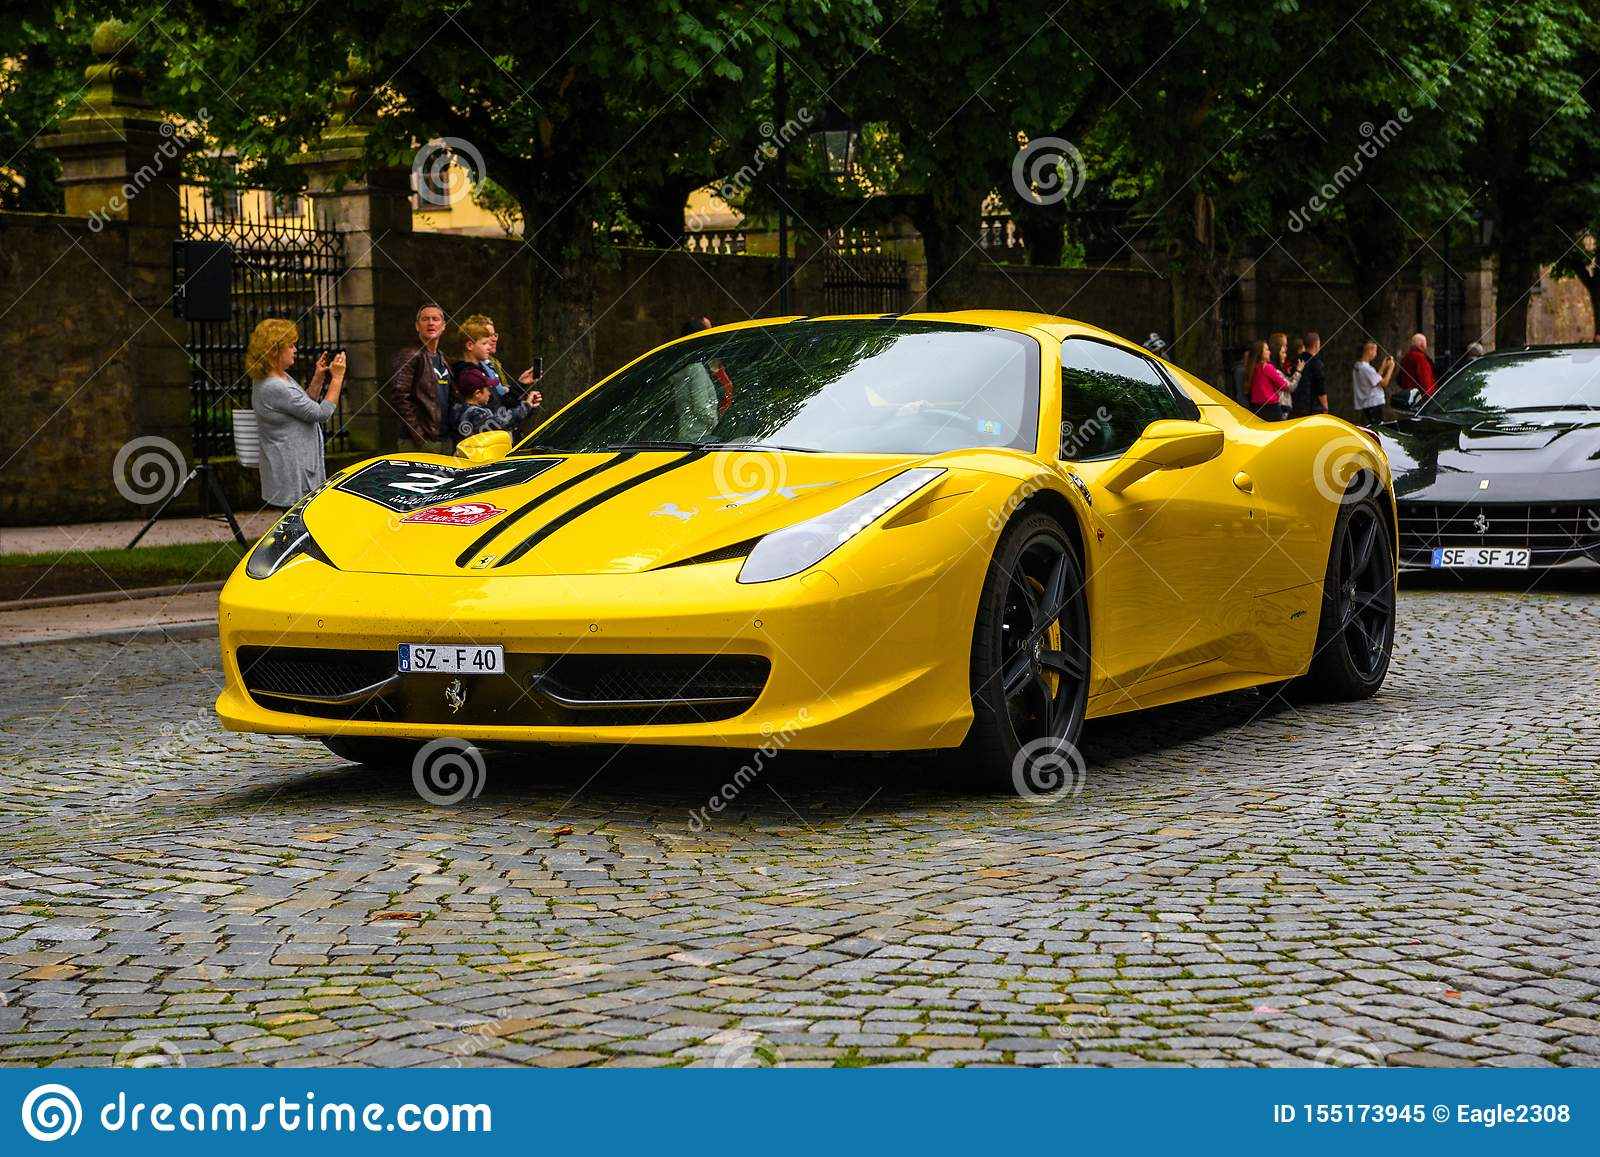 Germany Fulda Jul 2019 Yellow Ferrari 458 Spider Coupe Was I Editorial Image Image Of Italia Dimensional 155173945